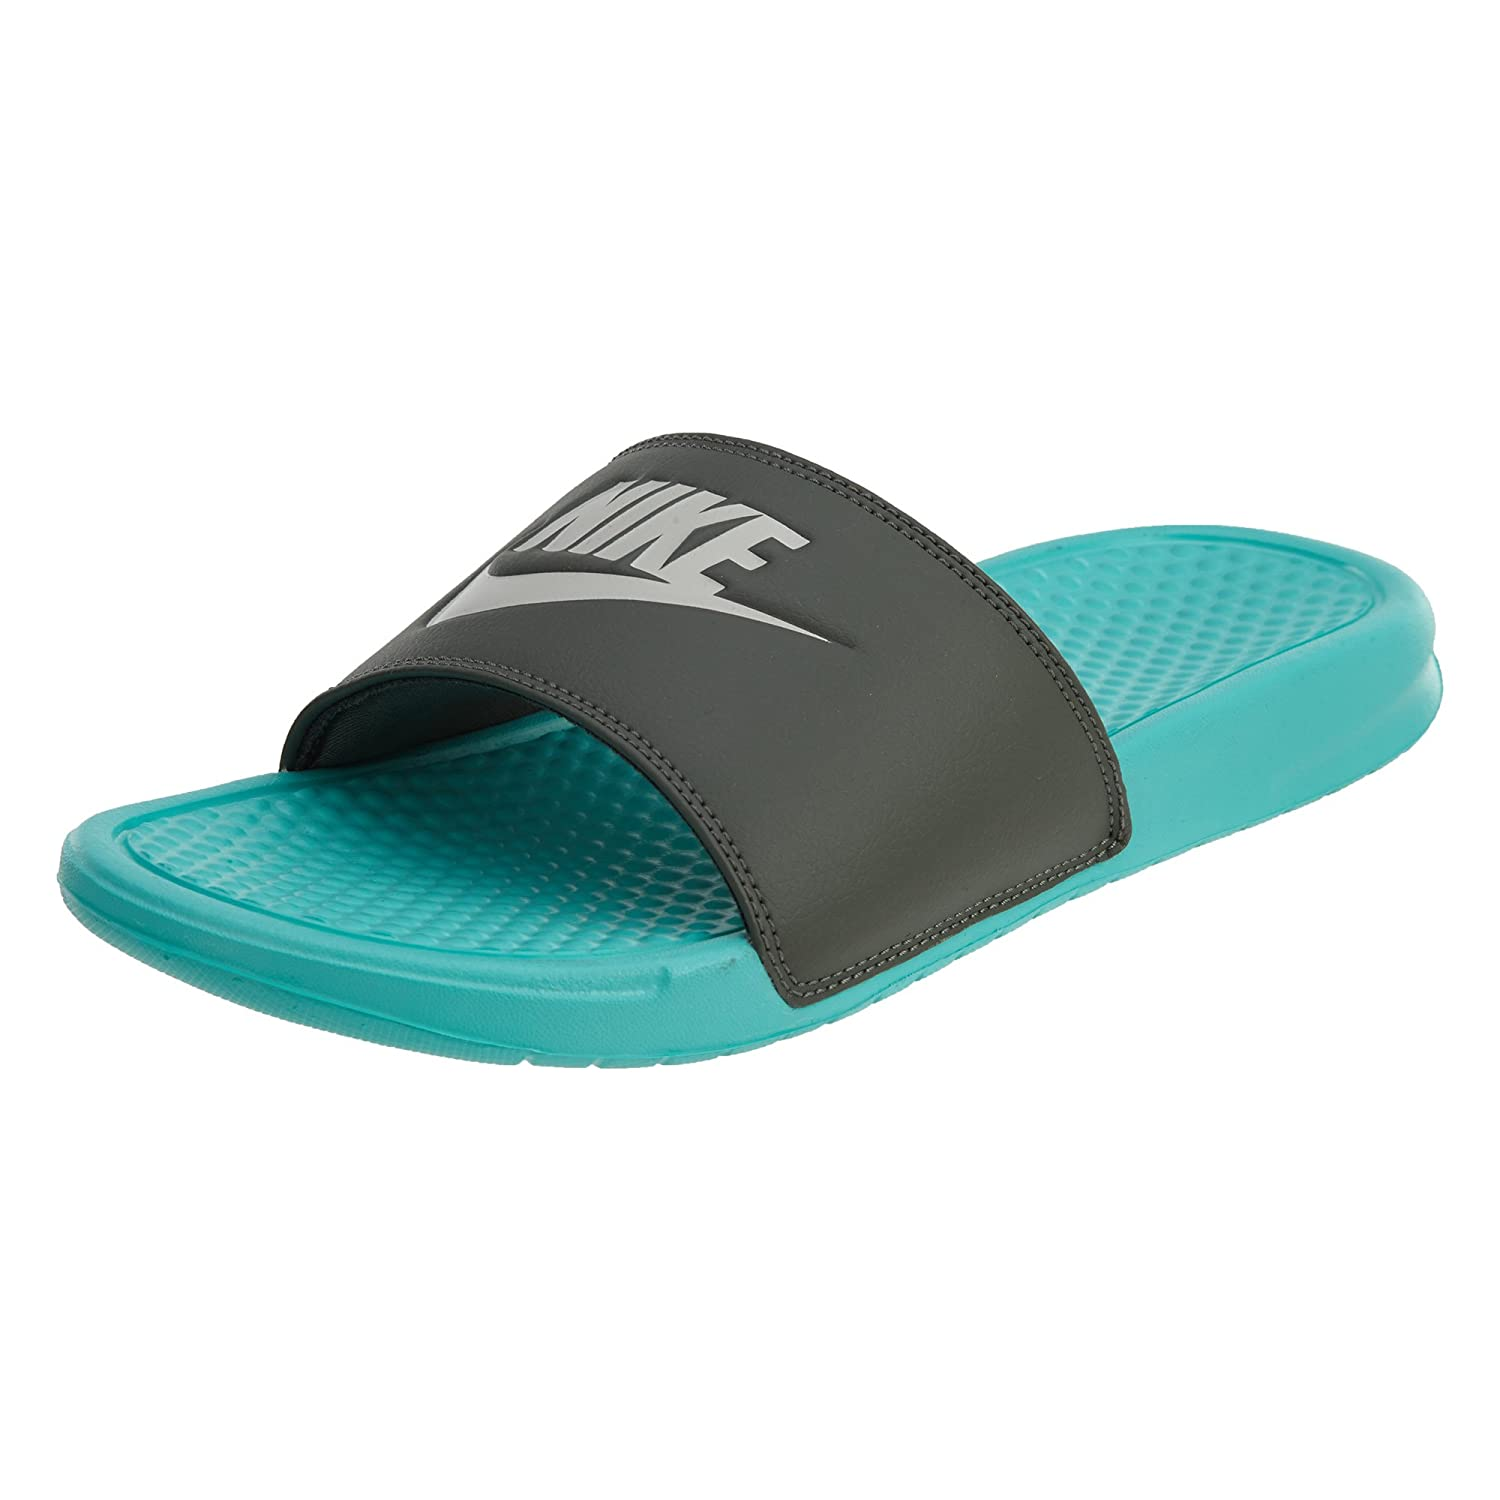 NIKE Men's Women's Benassi Just Do It Walking Shoe B00BU9Y2NG 9 B(M) US|Aurora Green/Light Bone